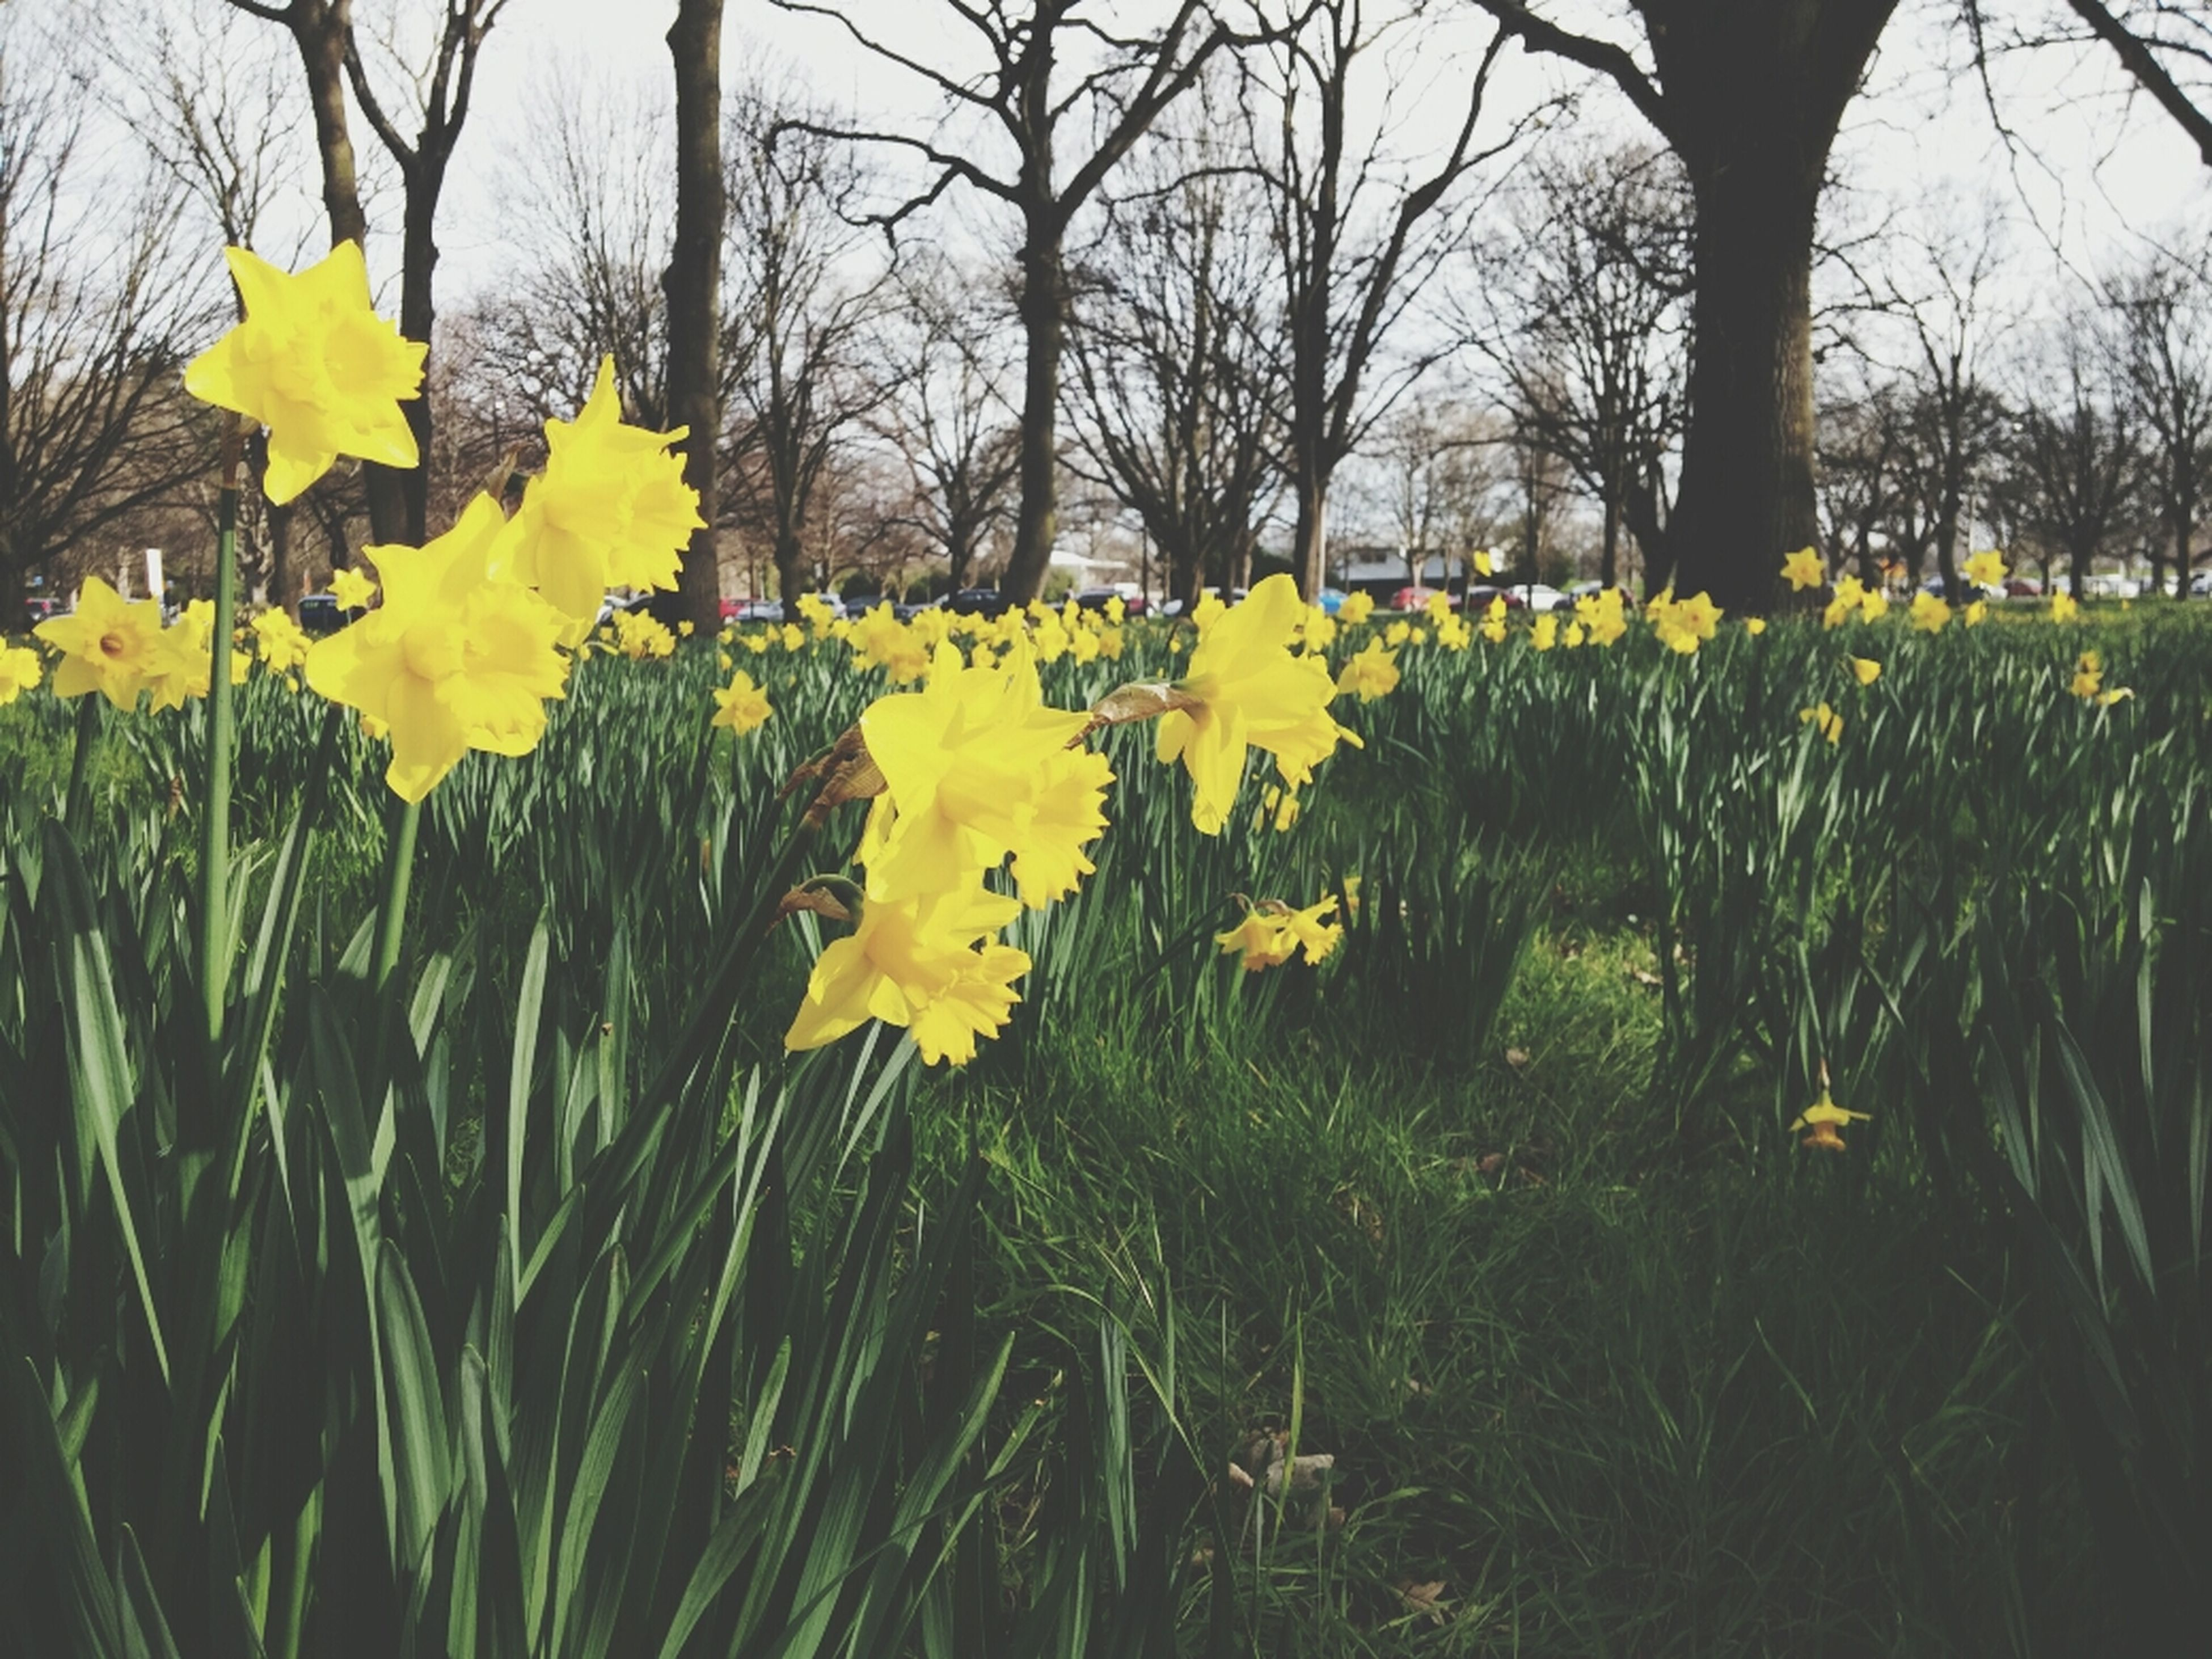 flower, yellow, growth, freshness, beauty in nature, fragility, nature, field, tree, petal, blossom, plant, blooming, in bloom, grass, tranquility, branch, springtime, green color, day